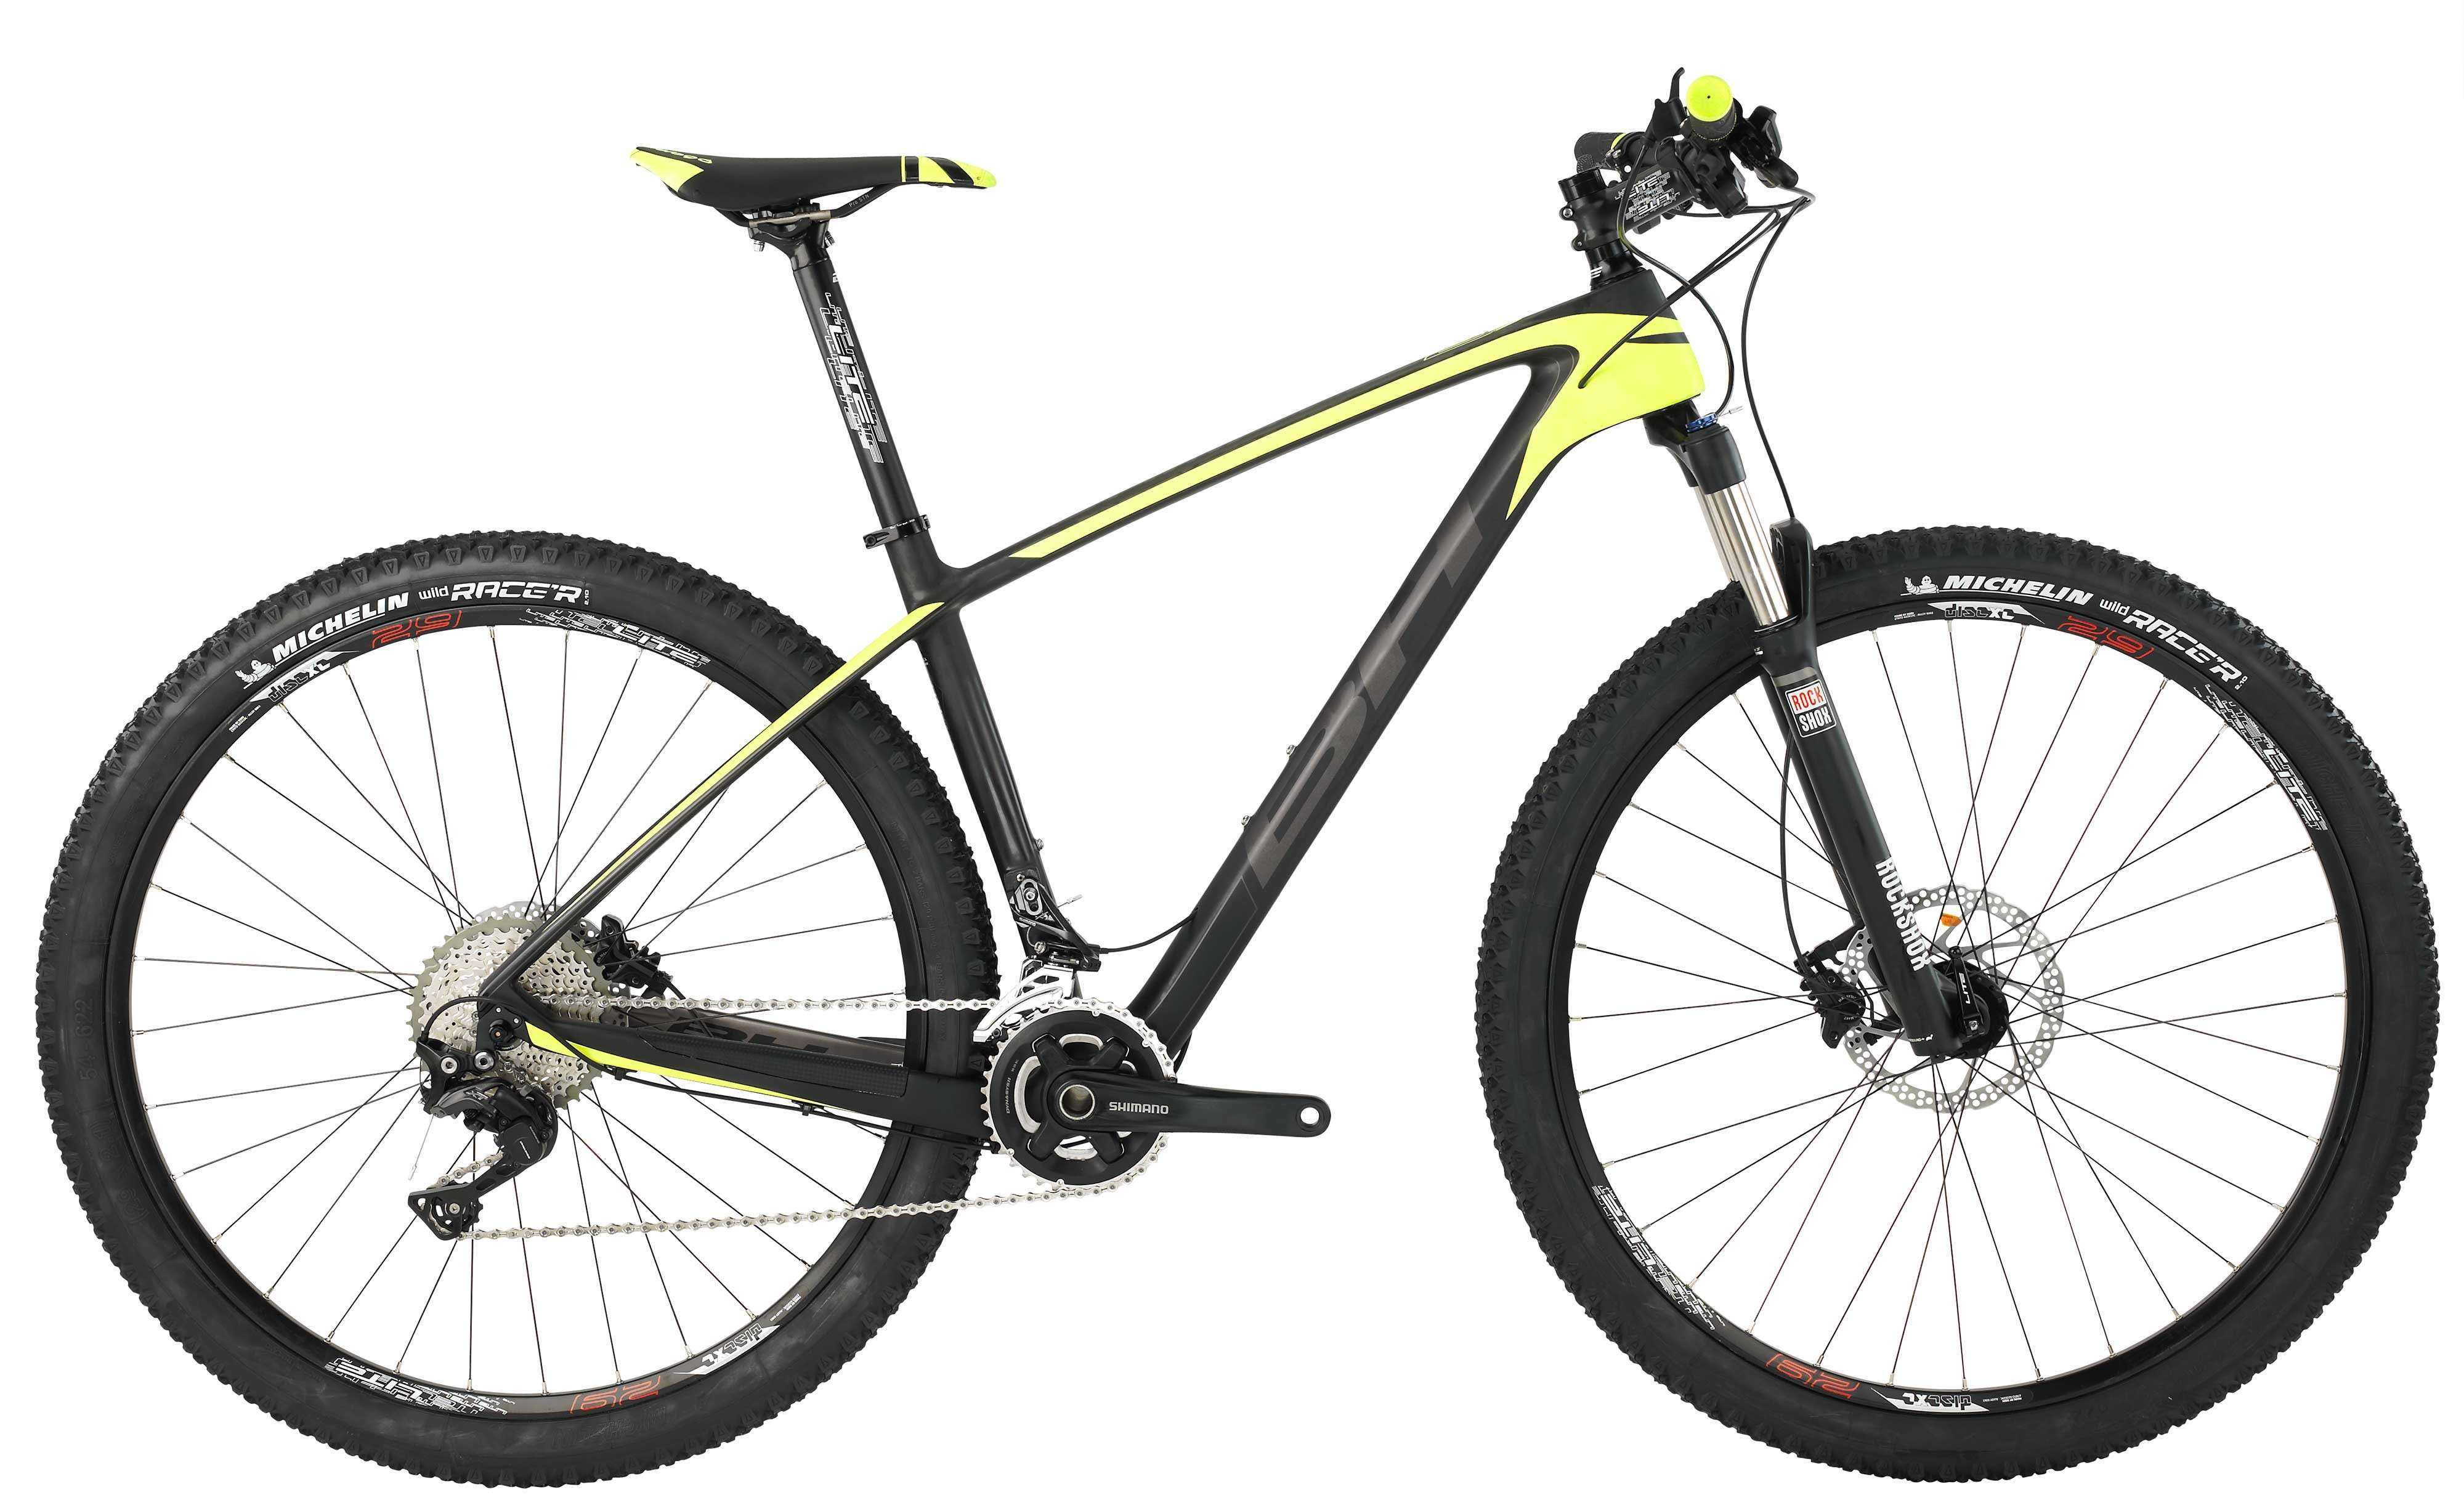 "BICI MTB BH ULTIMATE RC 29"" 8.7 CARBONO 22V. A7096."